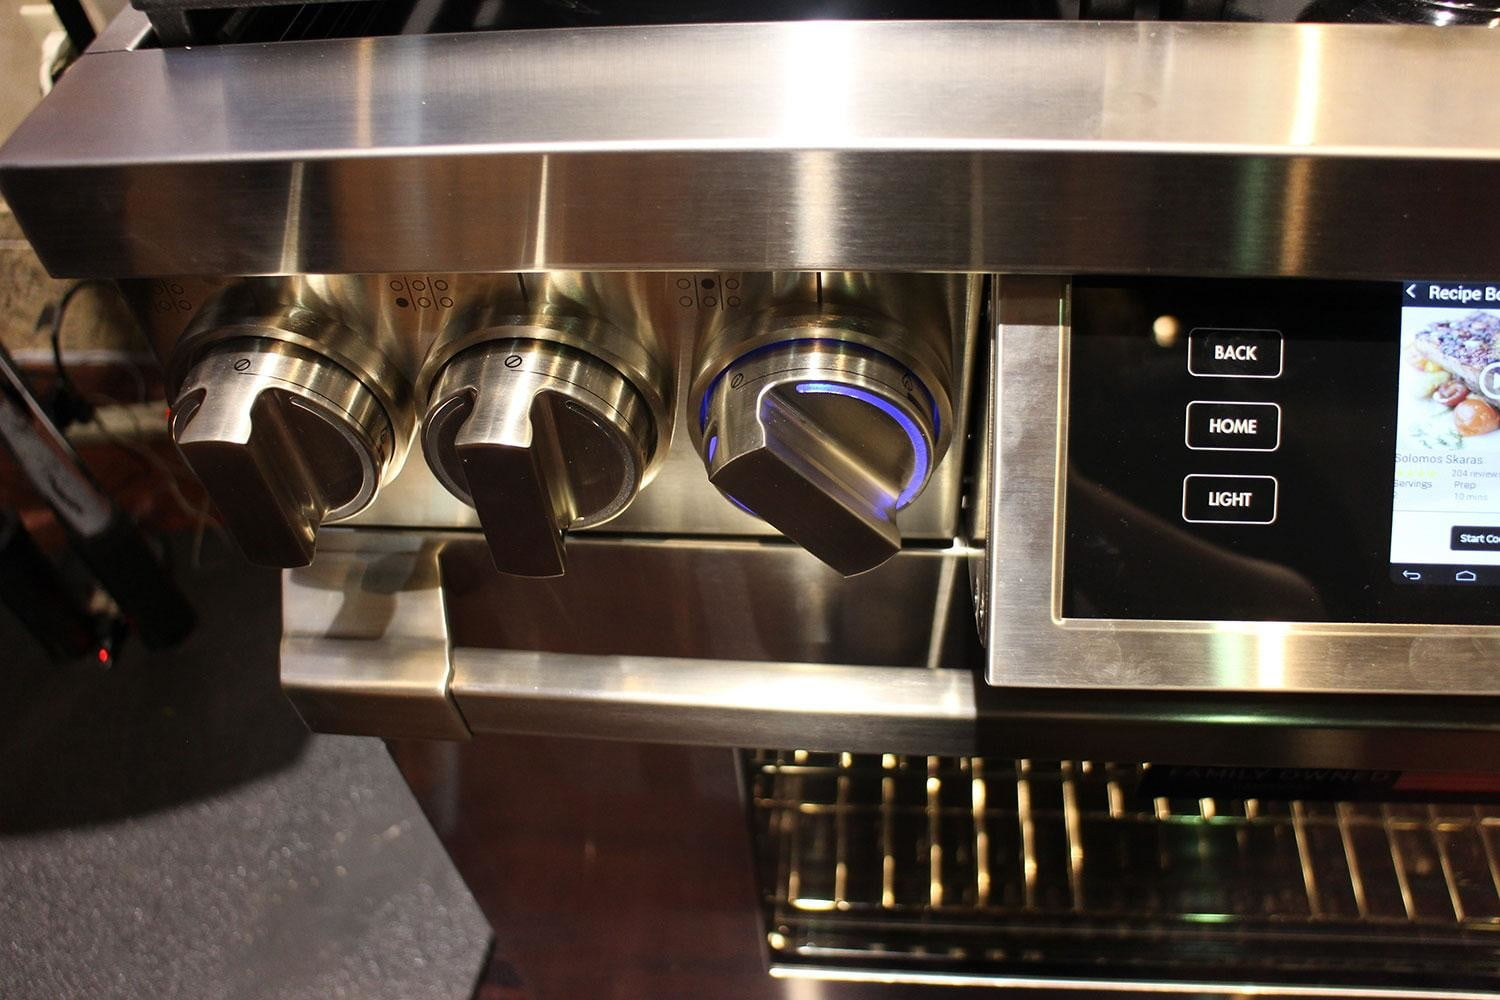 dacors voice activated oven debuts at ces 2015 dacor discovery iq dual fuel range 0259